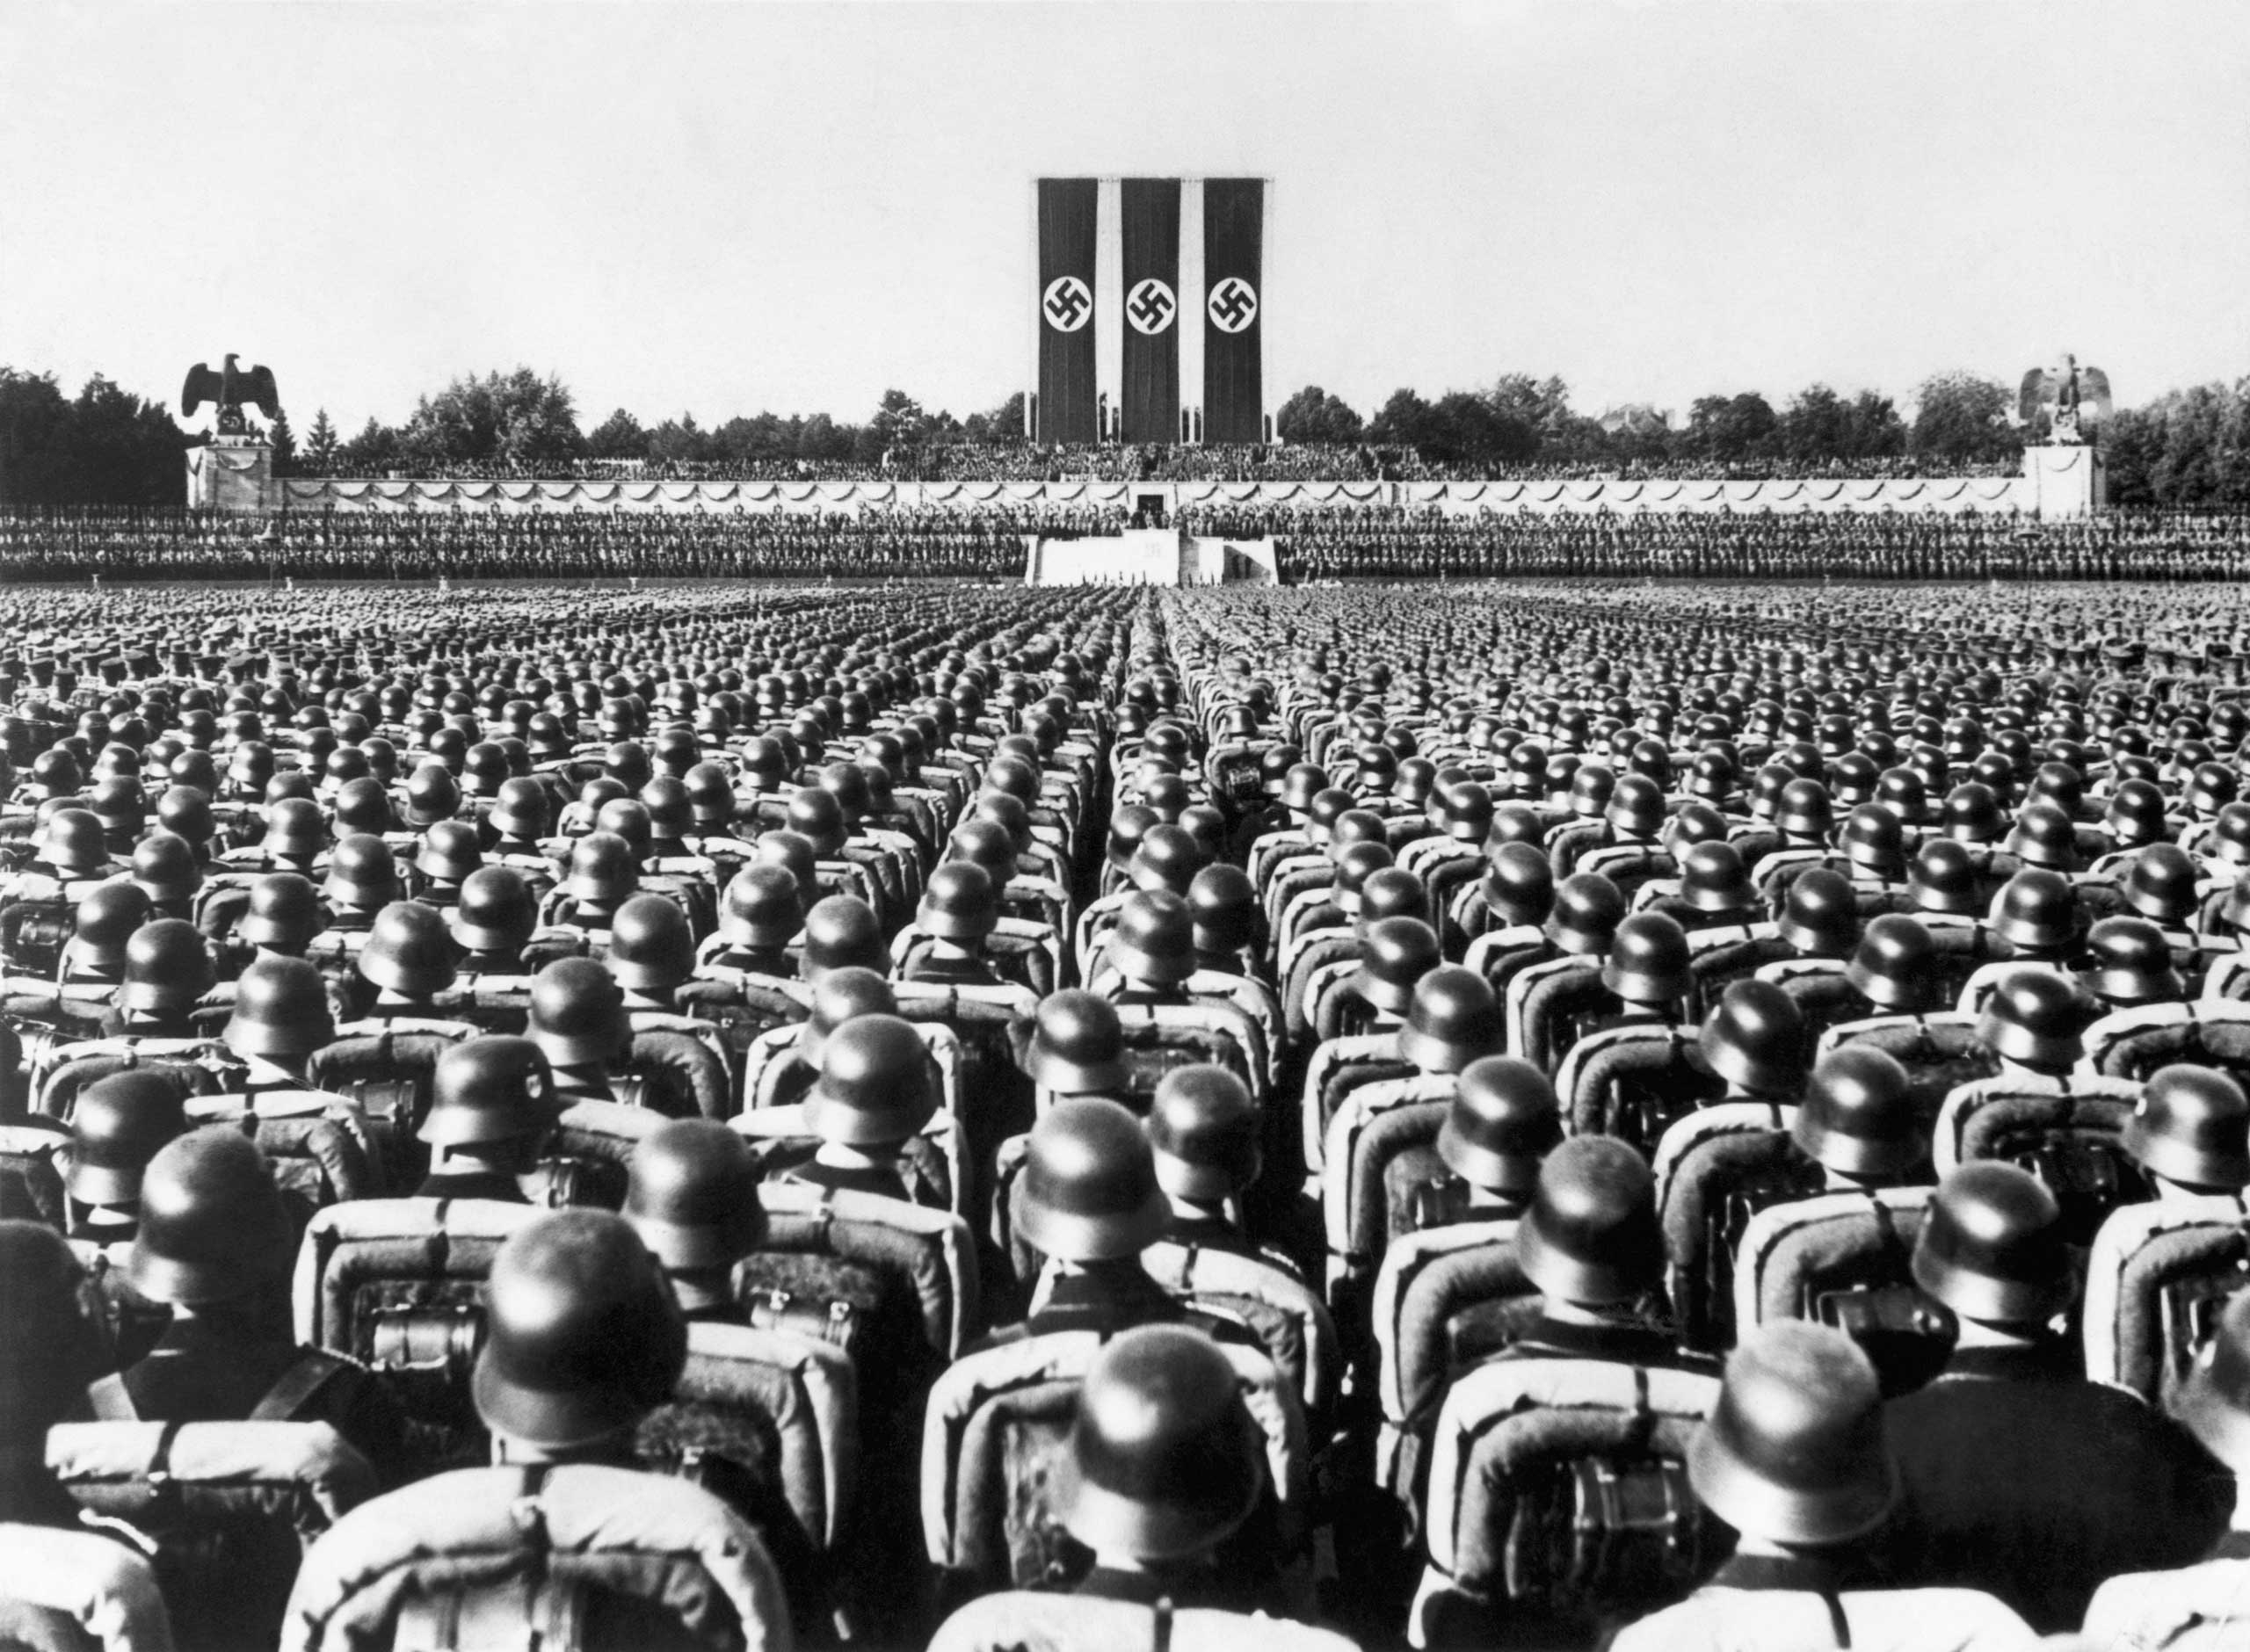 A huge crowd of soldiers in combat gear stands at attention beneath the reviewing stand at Nuremberg, Germany, listening to a speech by the German Fuhrer, Adolf Hitler during the Nazi Party rally of 1936.